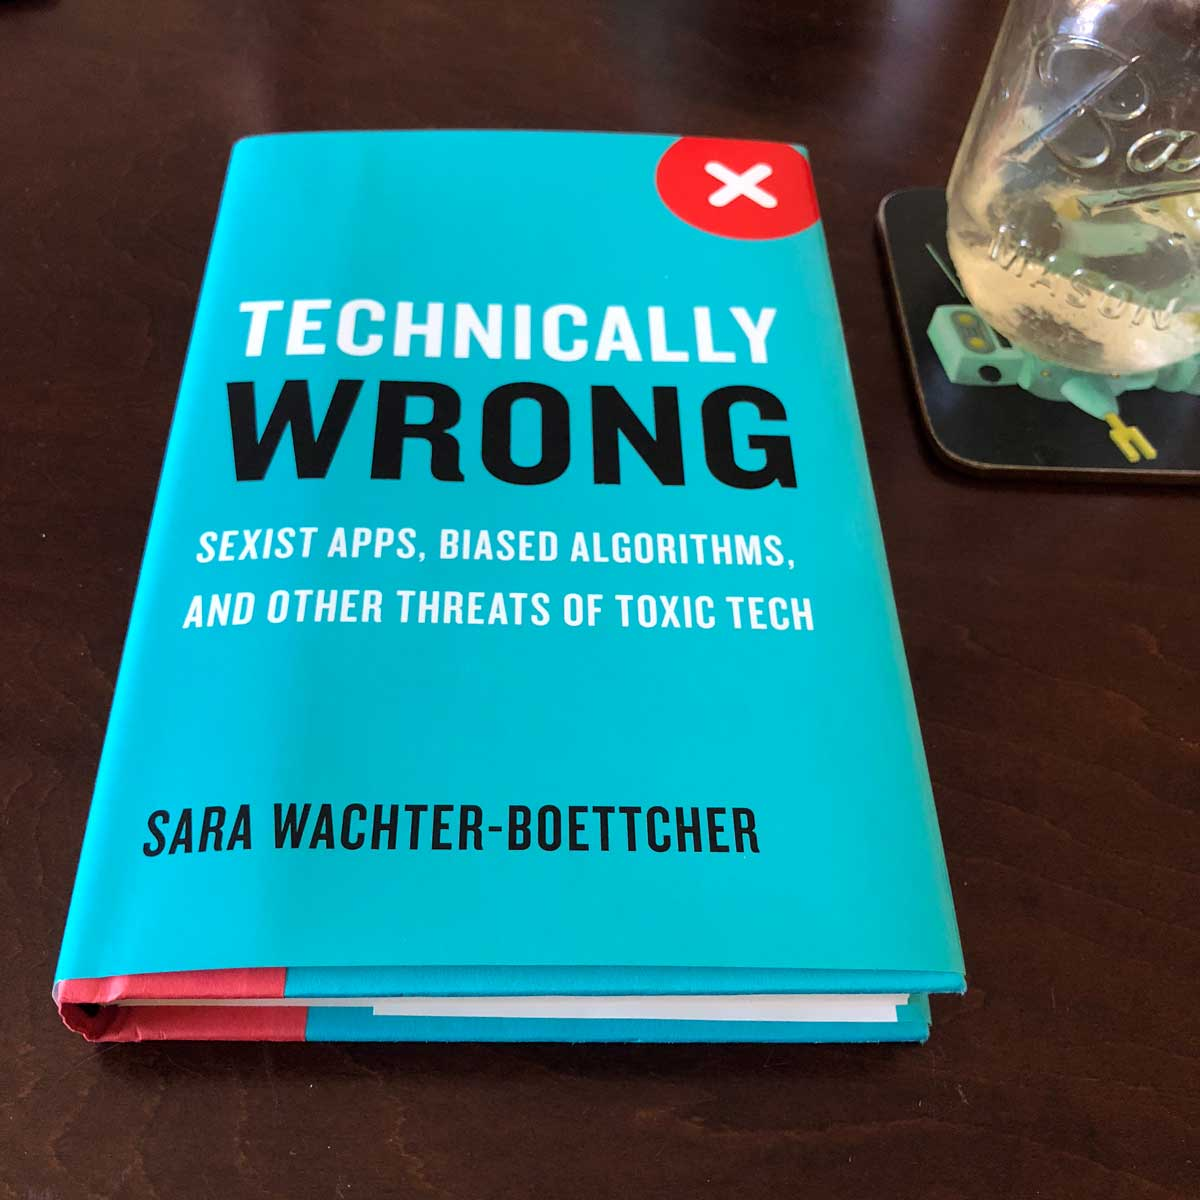 Image of the blue book cover for Technically Wrong by Sara Wachter-boettcher